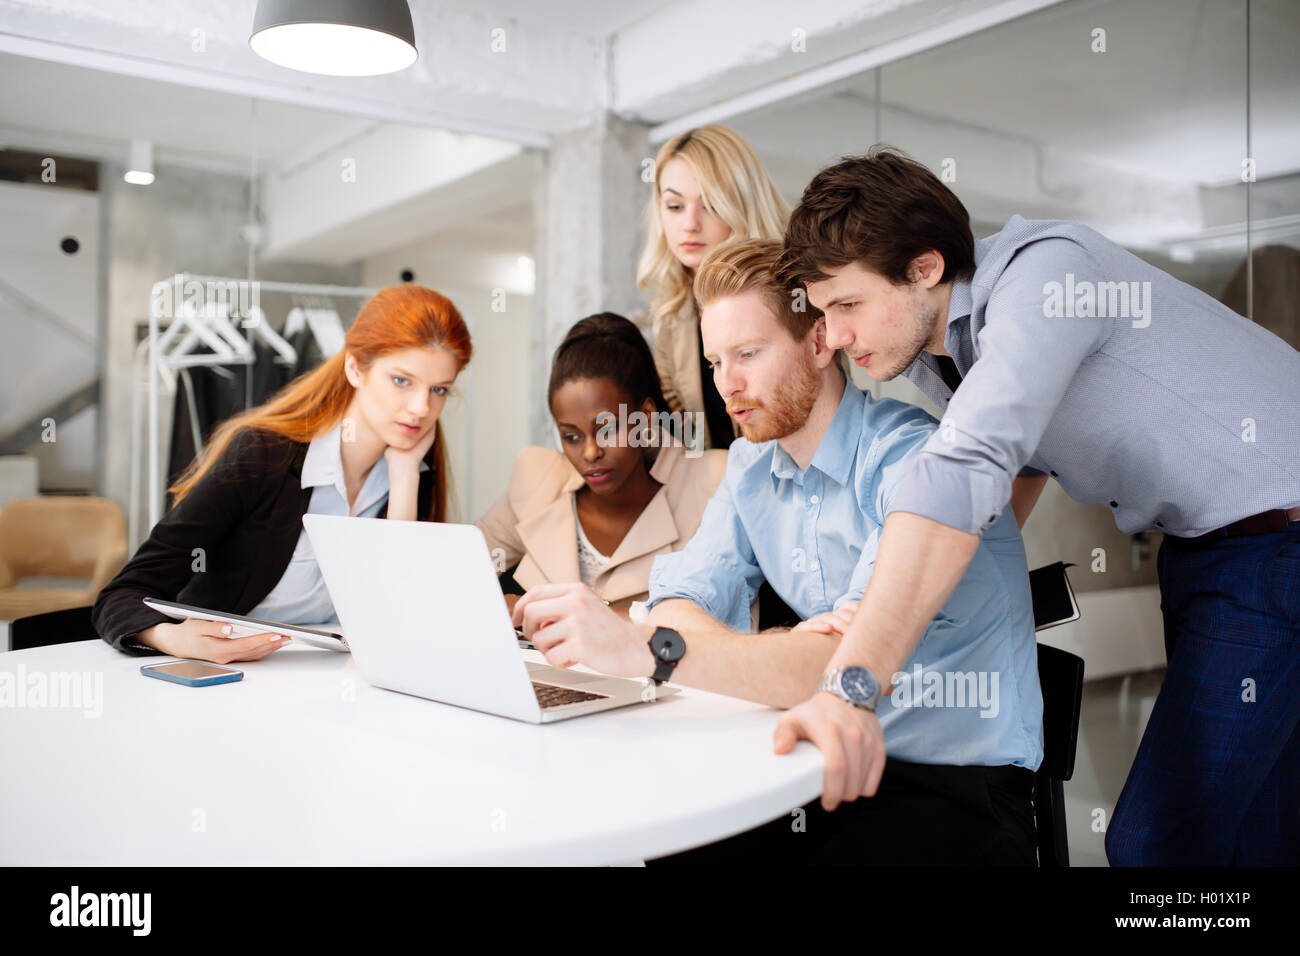 Skilled designers and business people working in tidy modern office - Stock Image